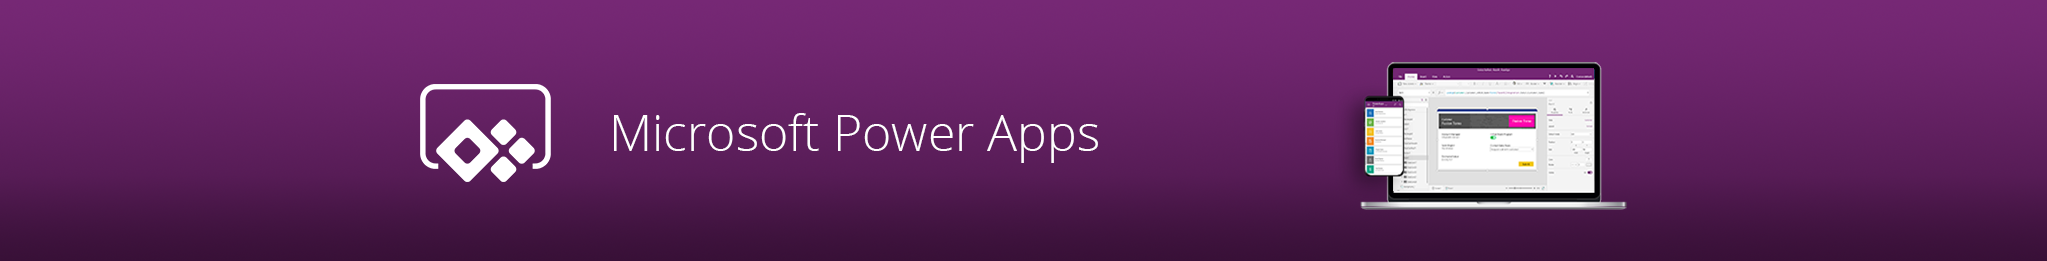 Banner_powerapps